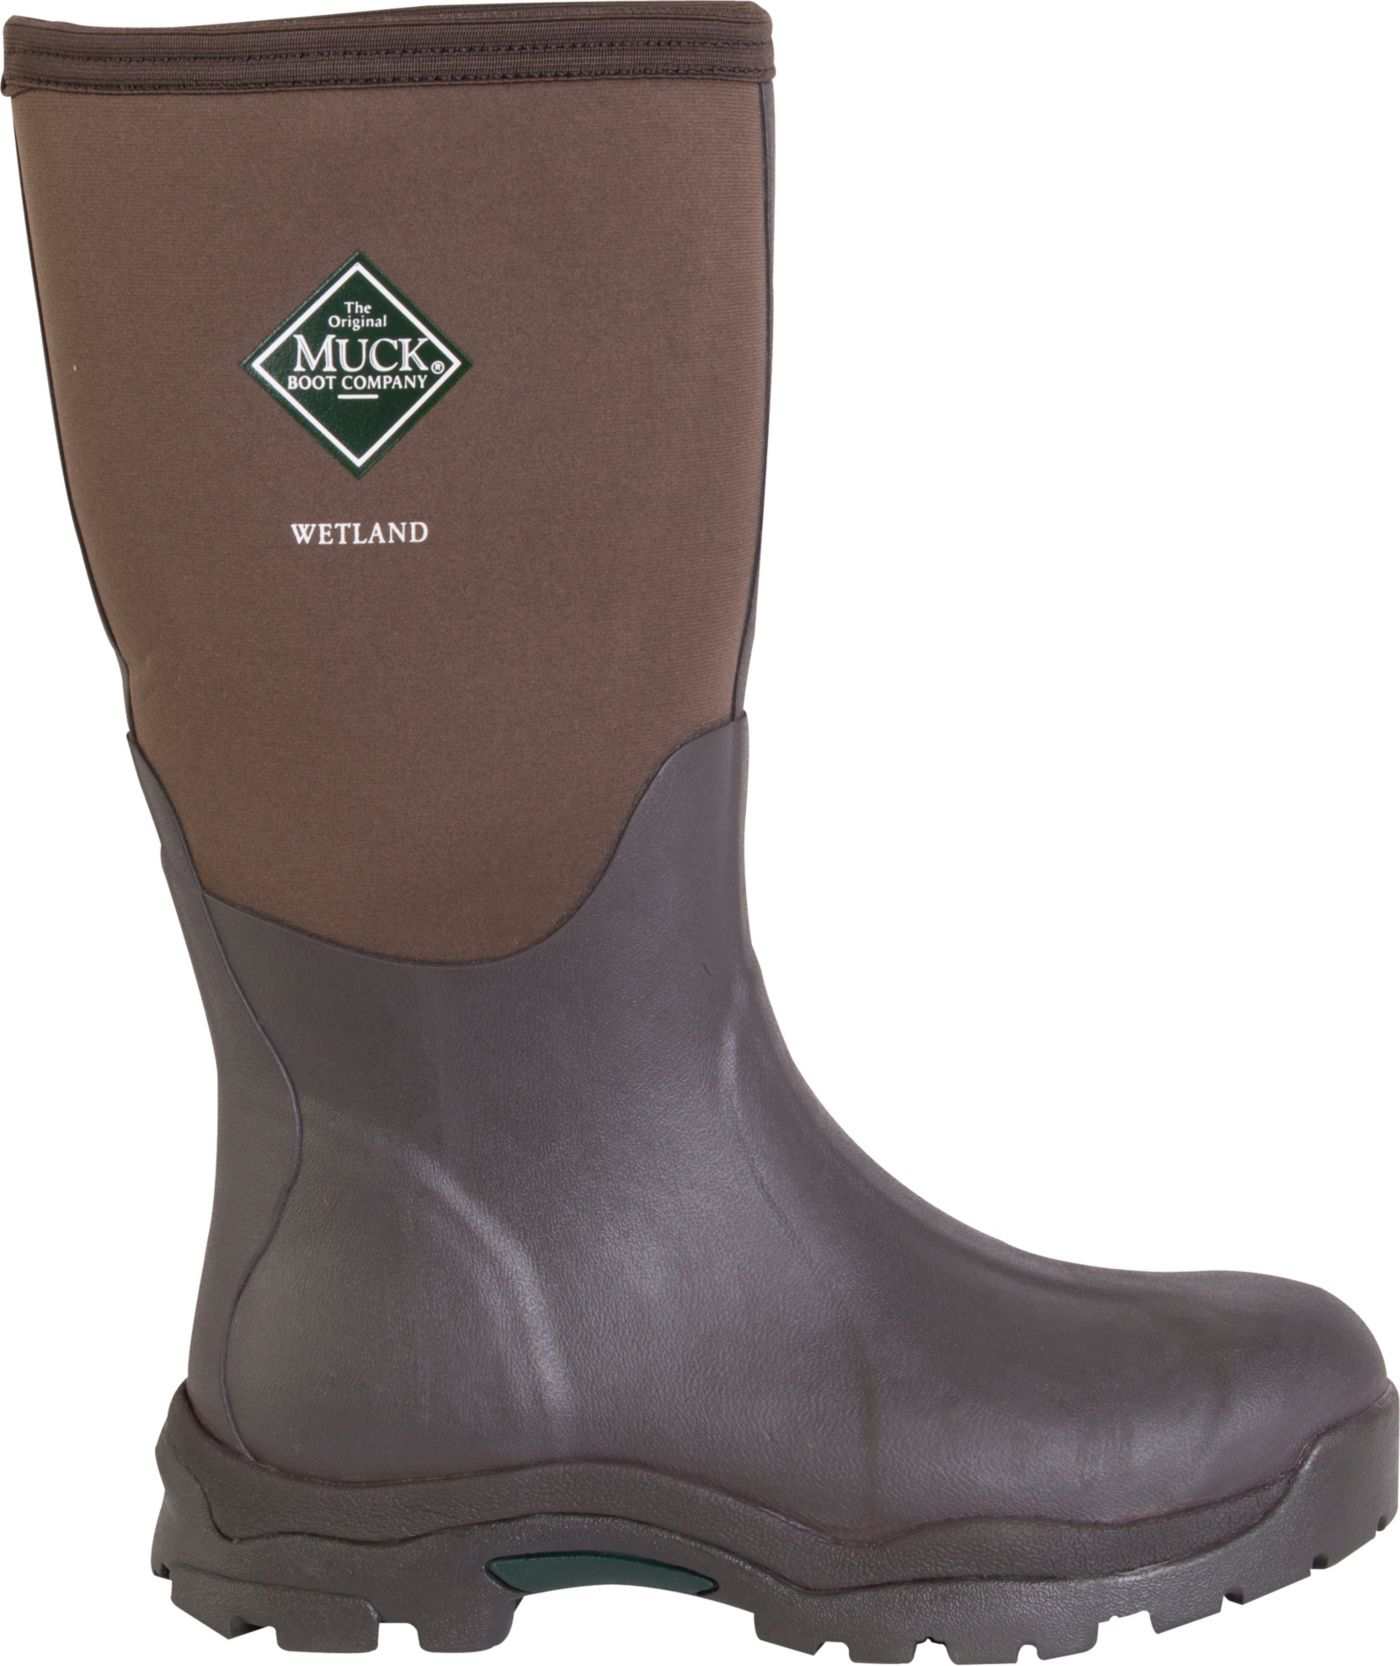 Muck Boots Women's Wetland Waterproof Field Hunting Boots